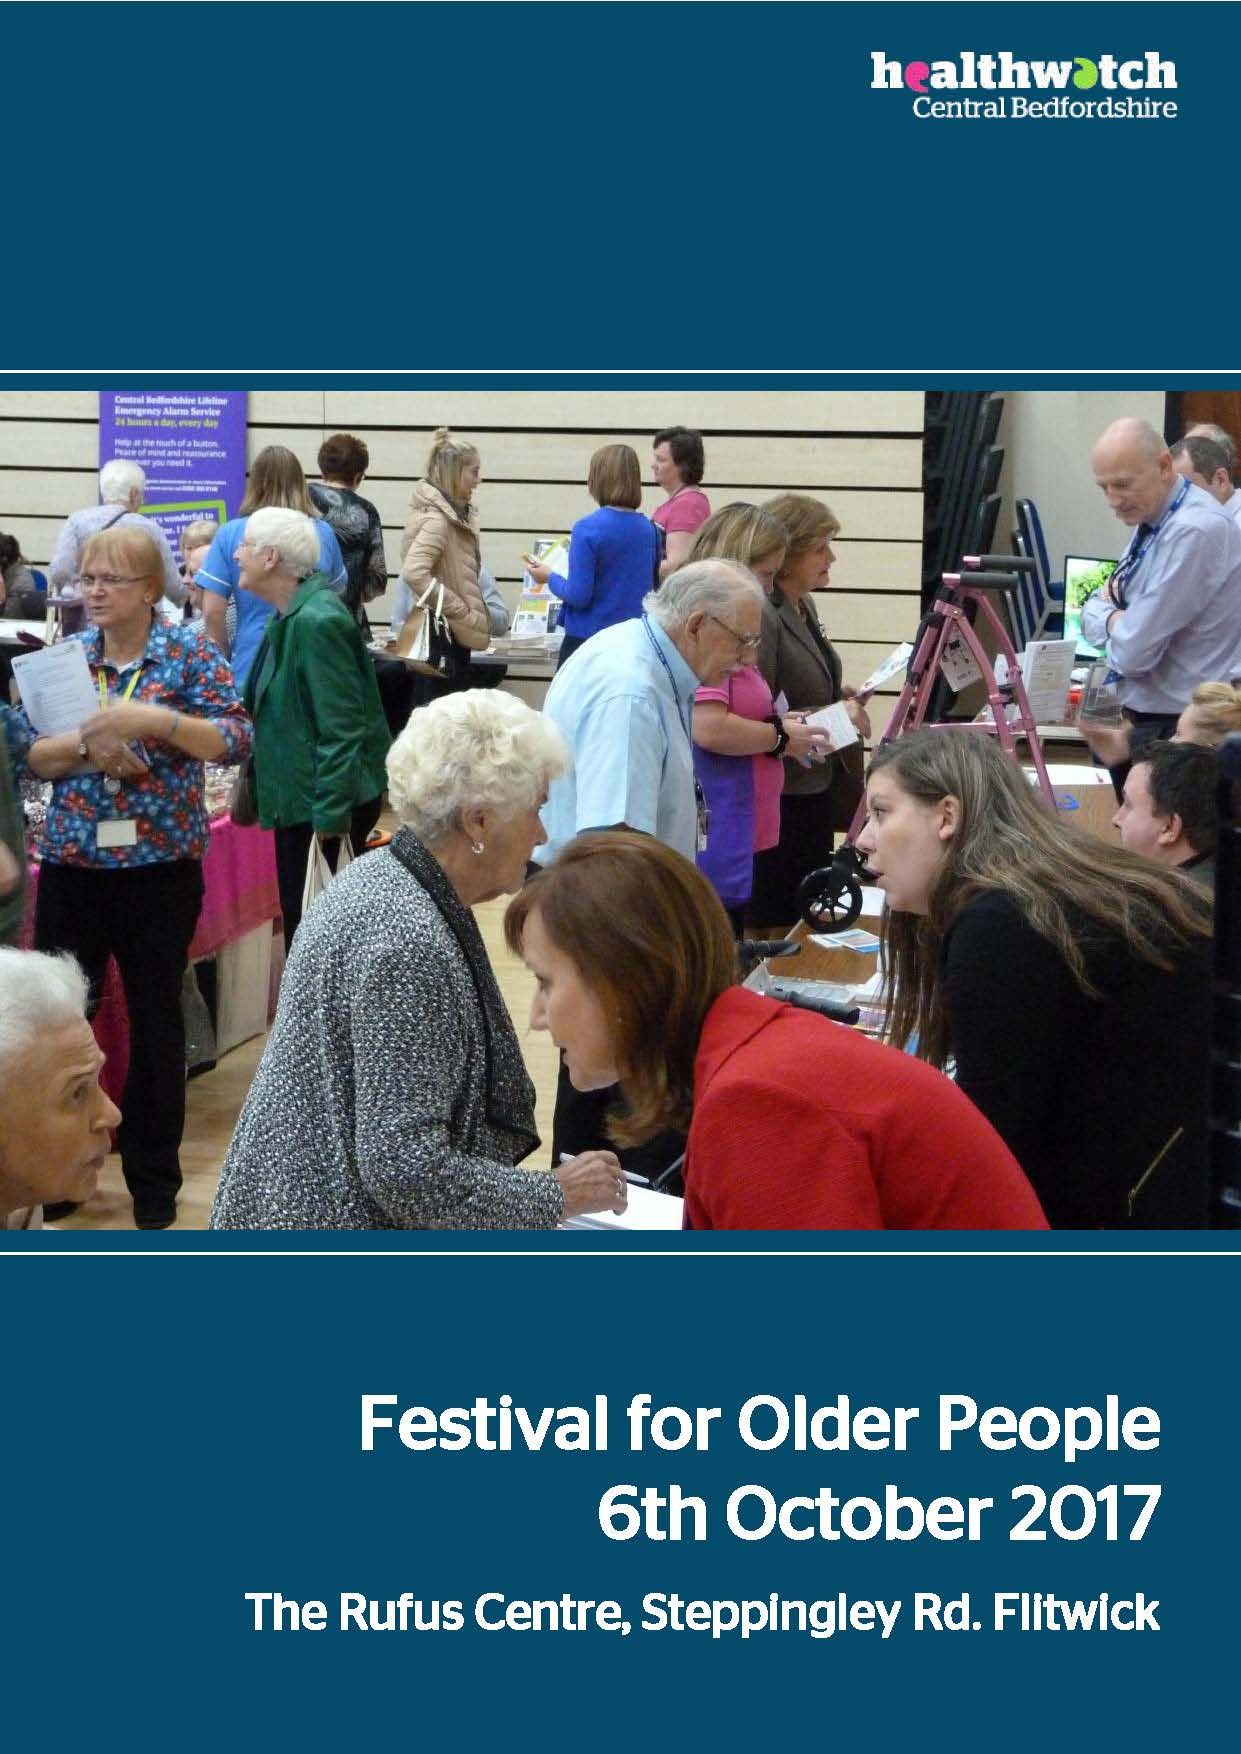 Festival for Older People 2017